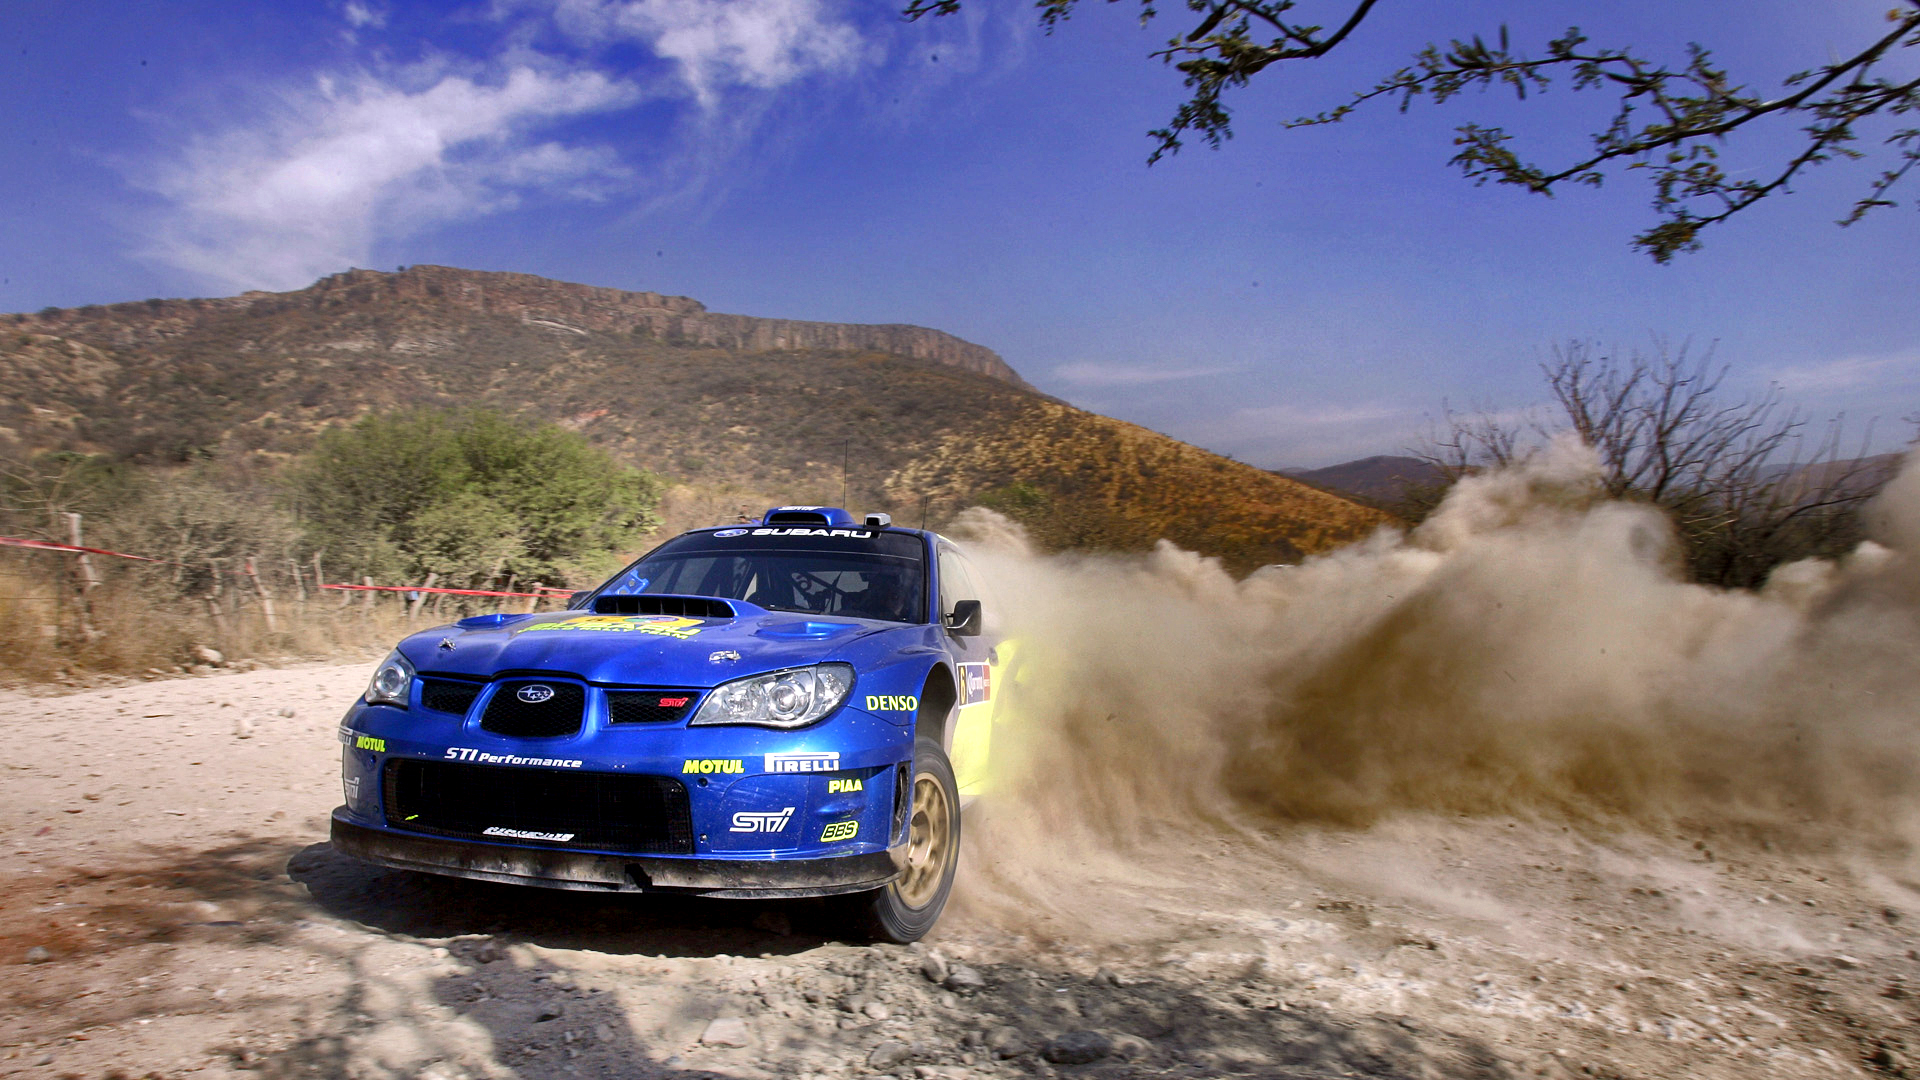 37 Rally wallpapers for your PC, mobile phone, iPad, iPhone.